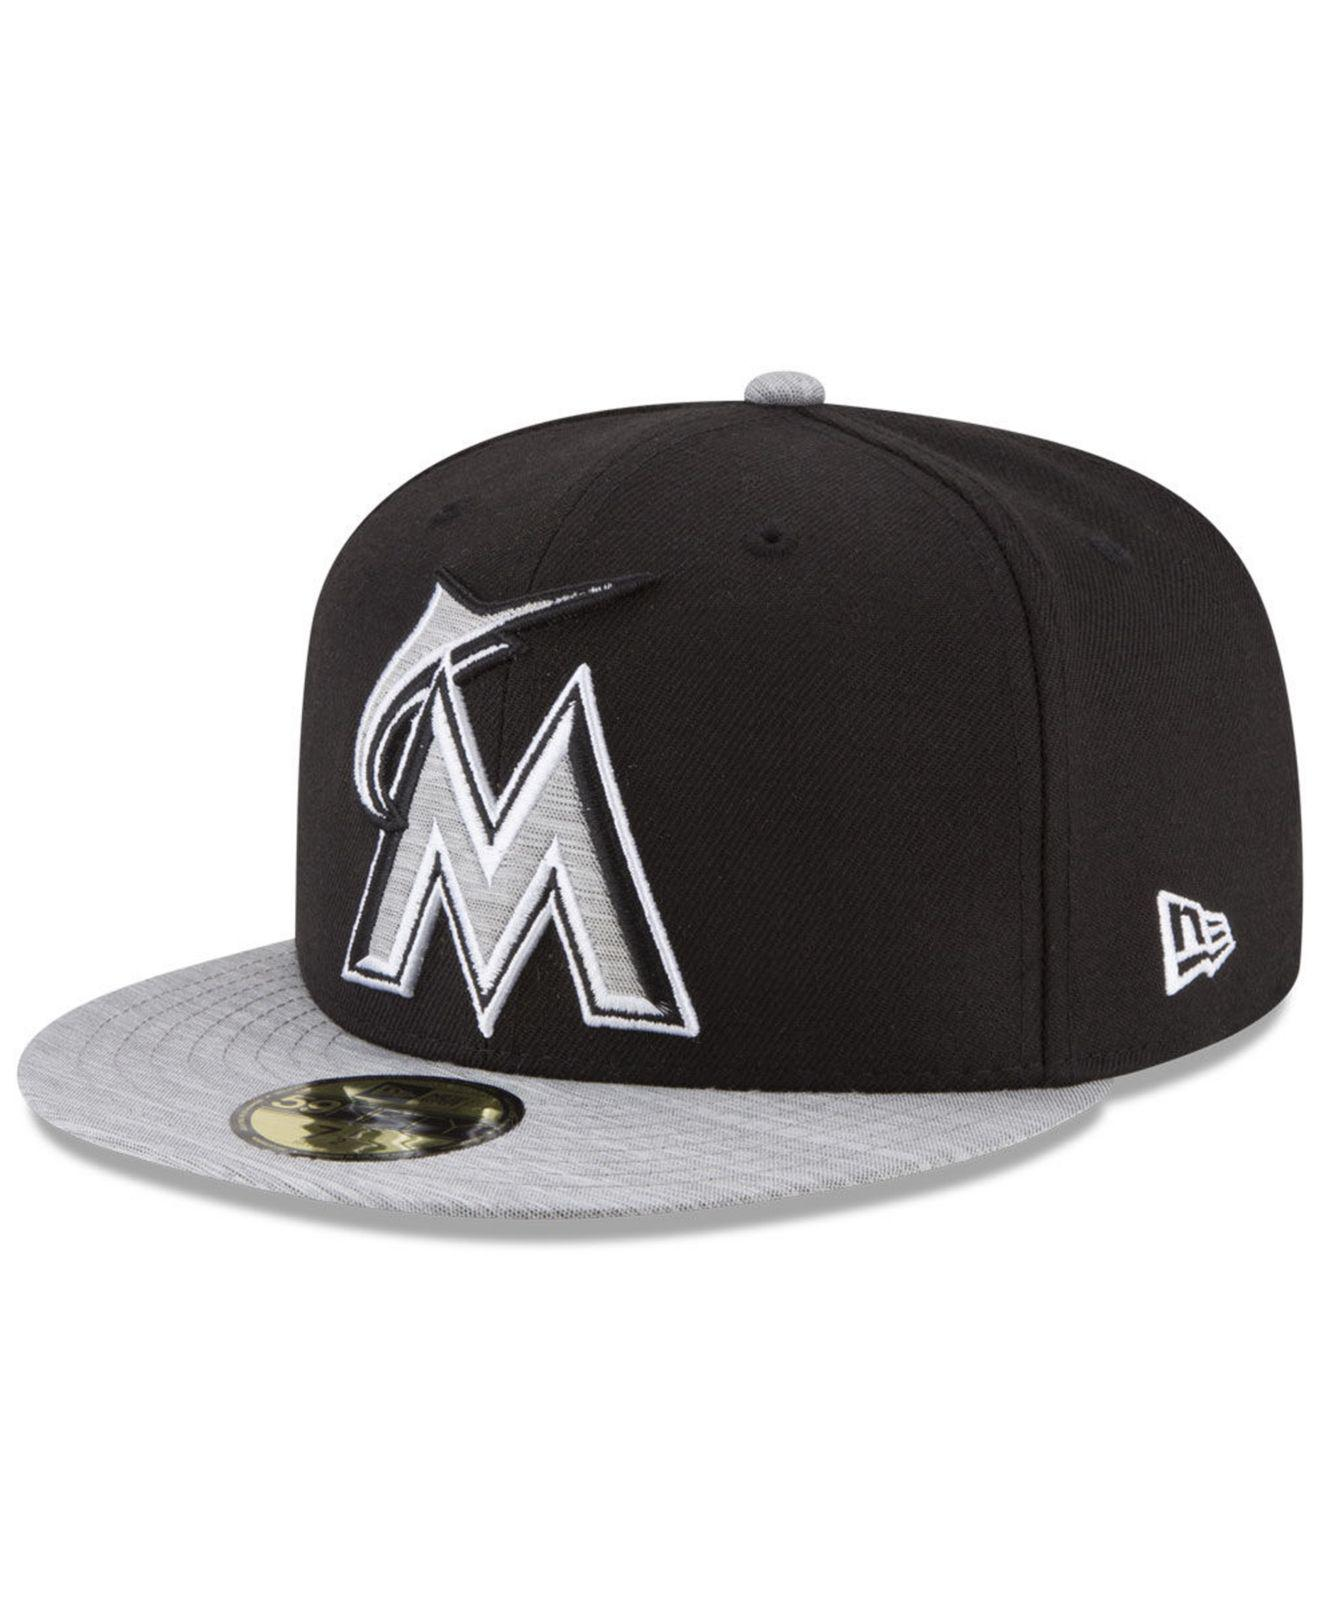 quality design 74641 7fdcb ... official store ktz miami marlins black heather 59fifty fitted cap for men  lyst. view fullscreen